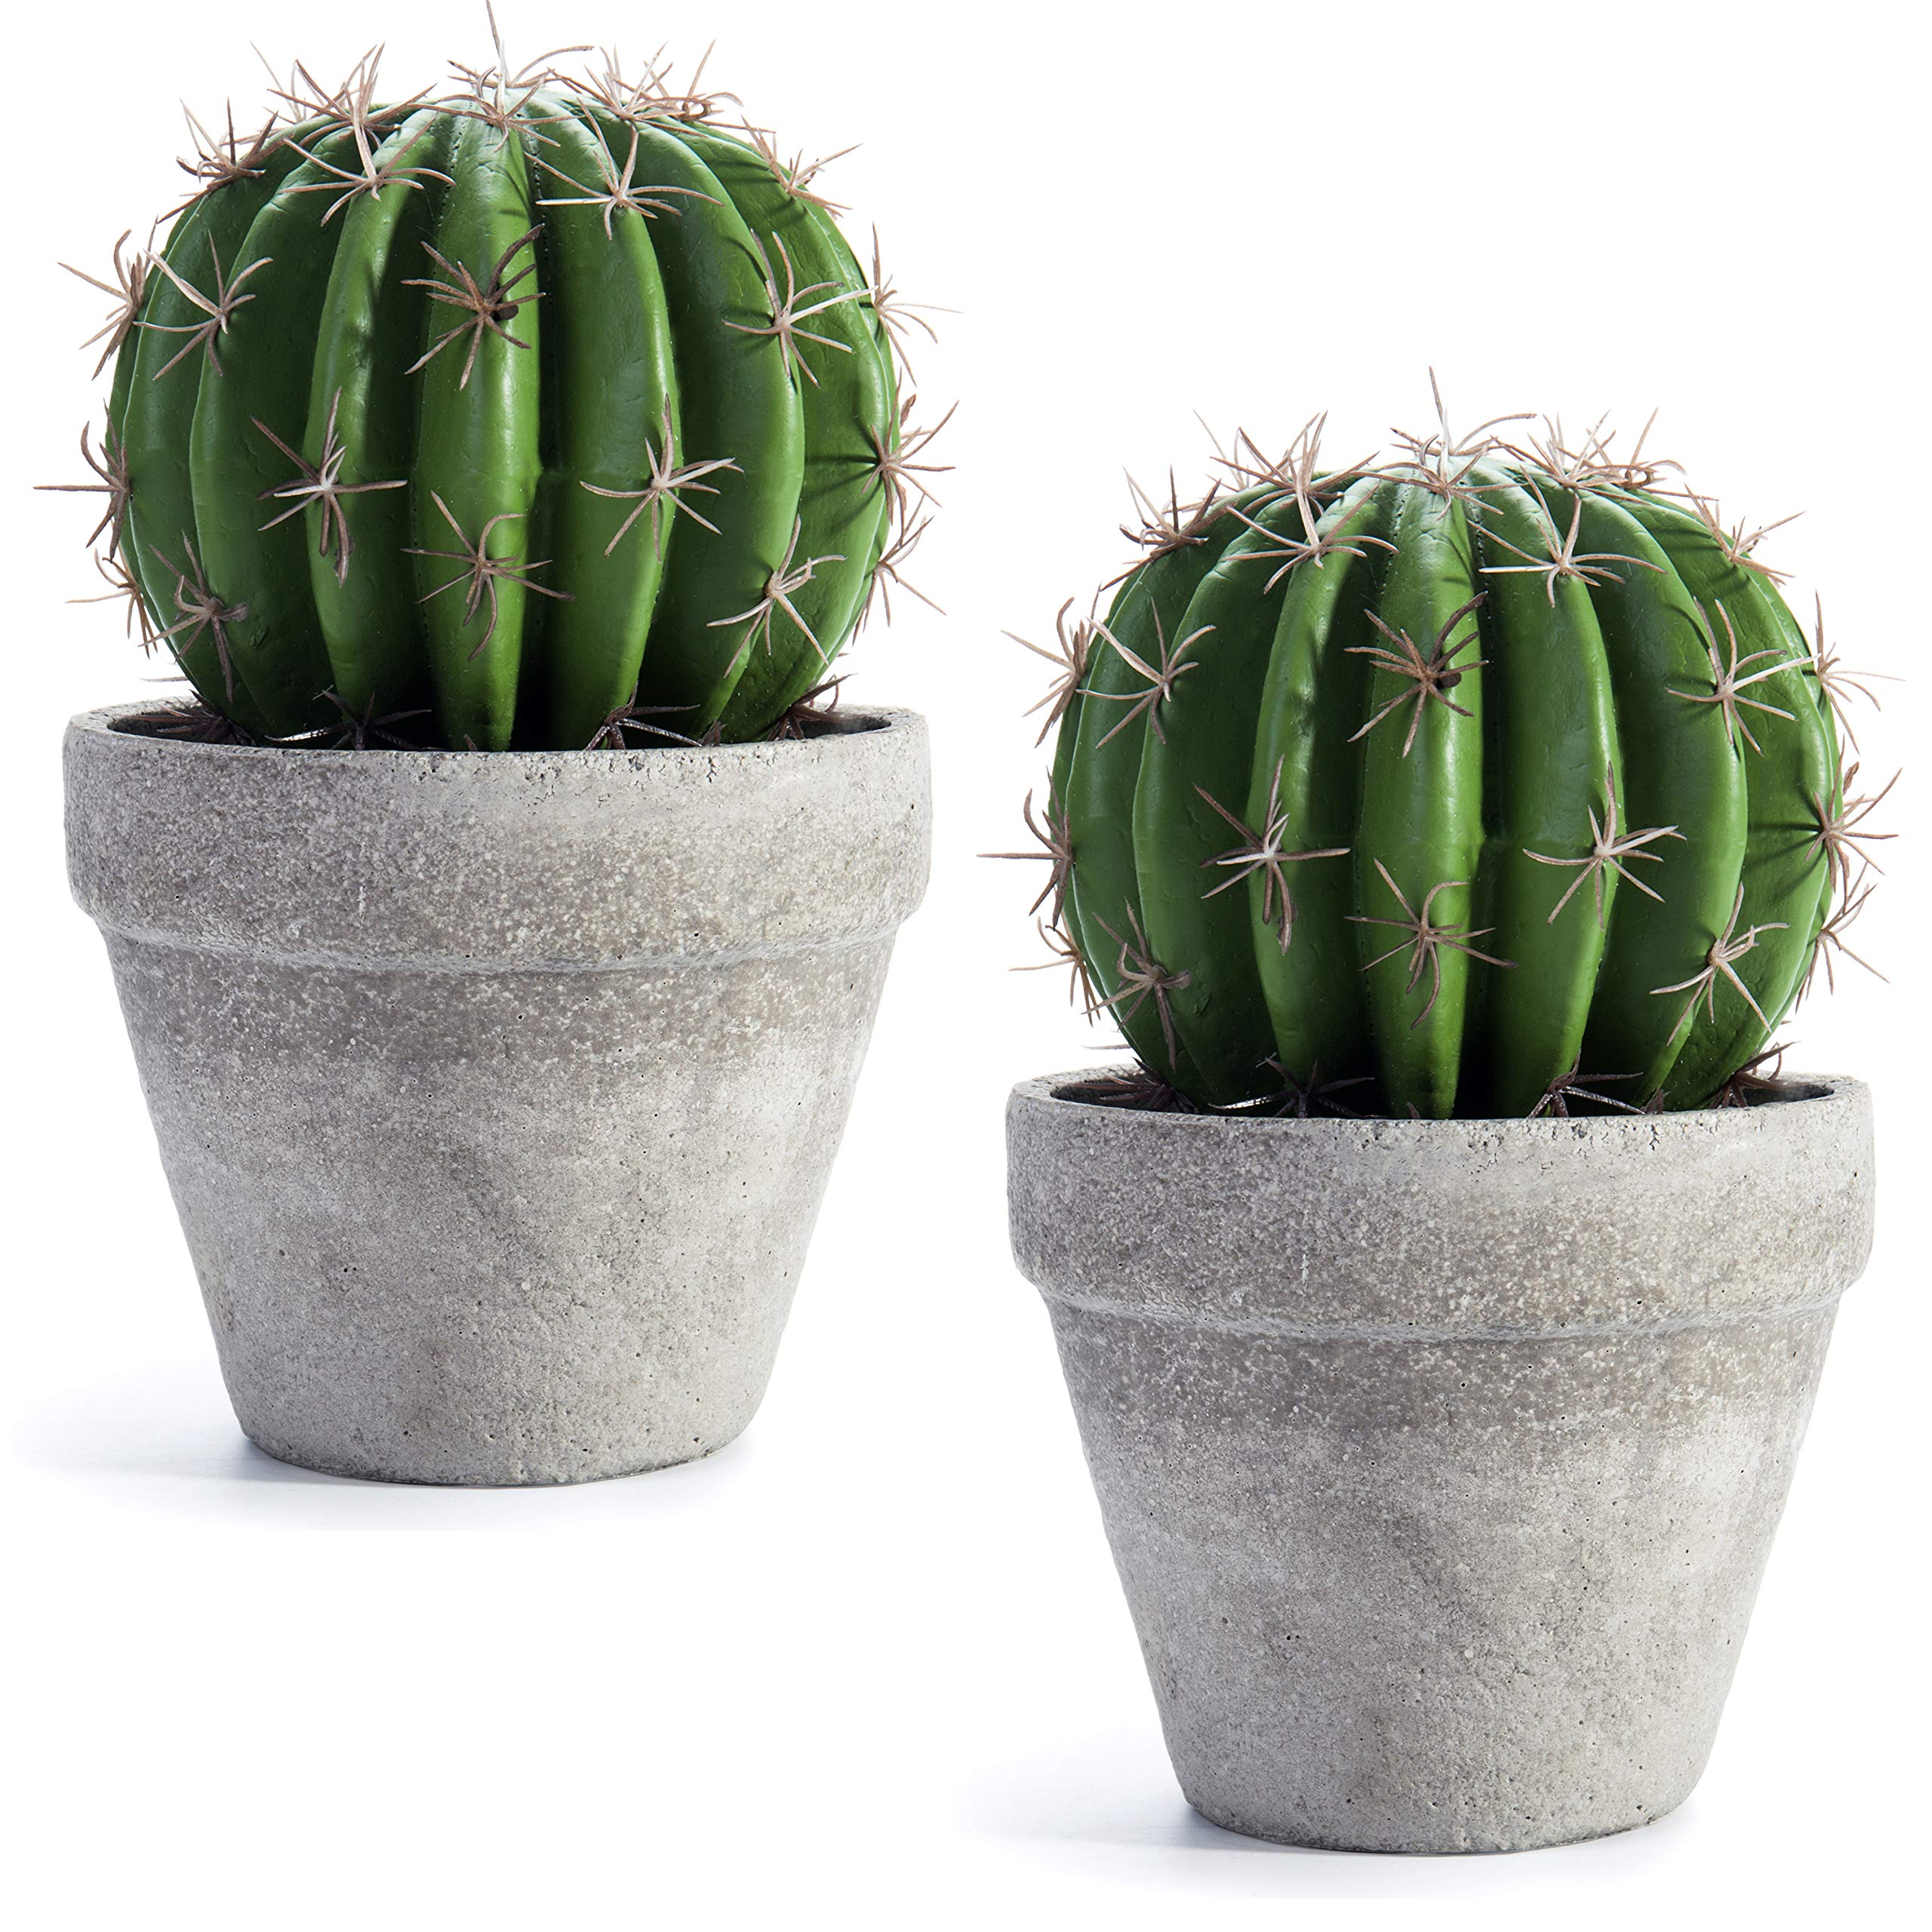 MyGift 8.5-inch Faux Barrel Cactus Plant in Cement-Style Planter Pot, set of 2